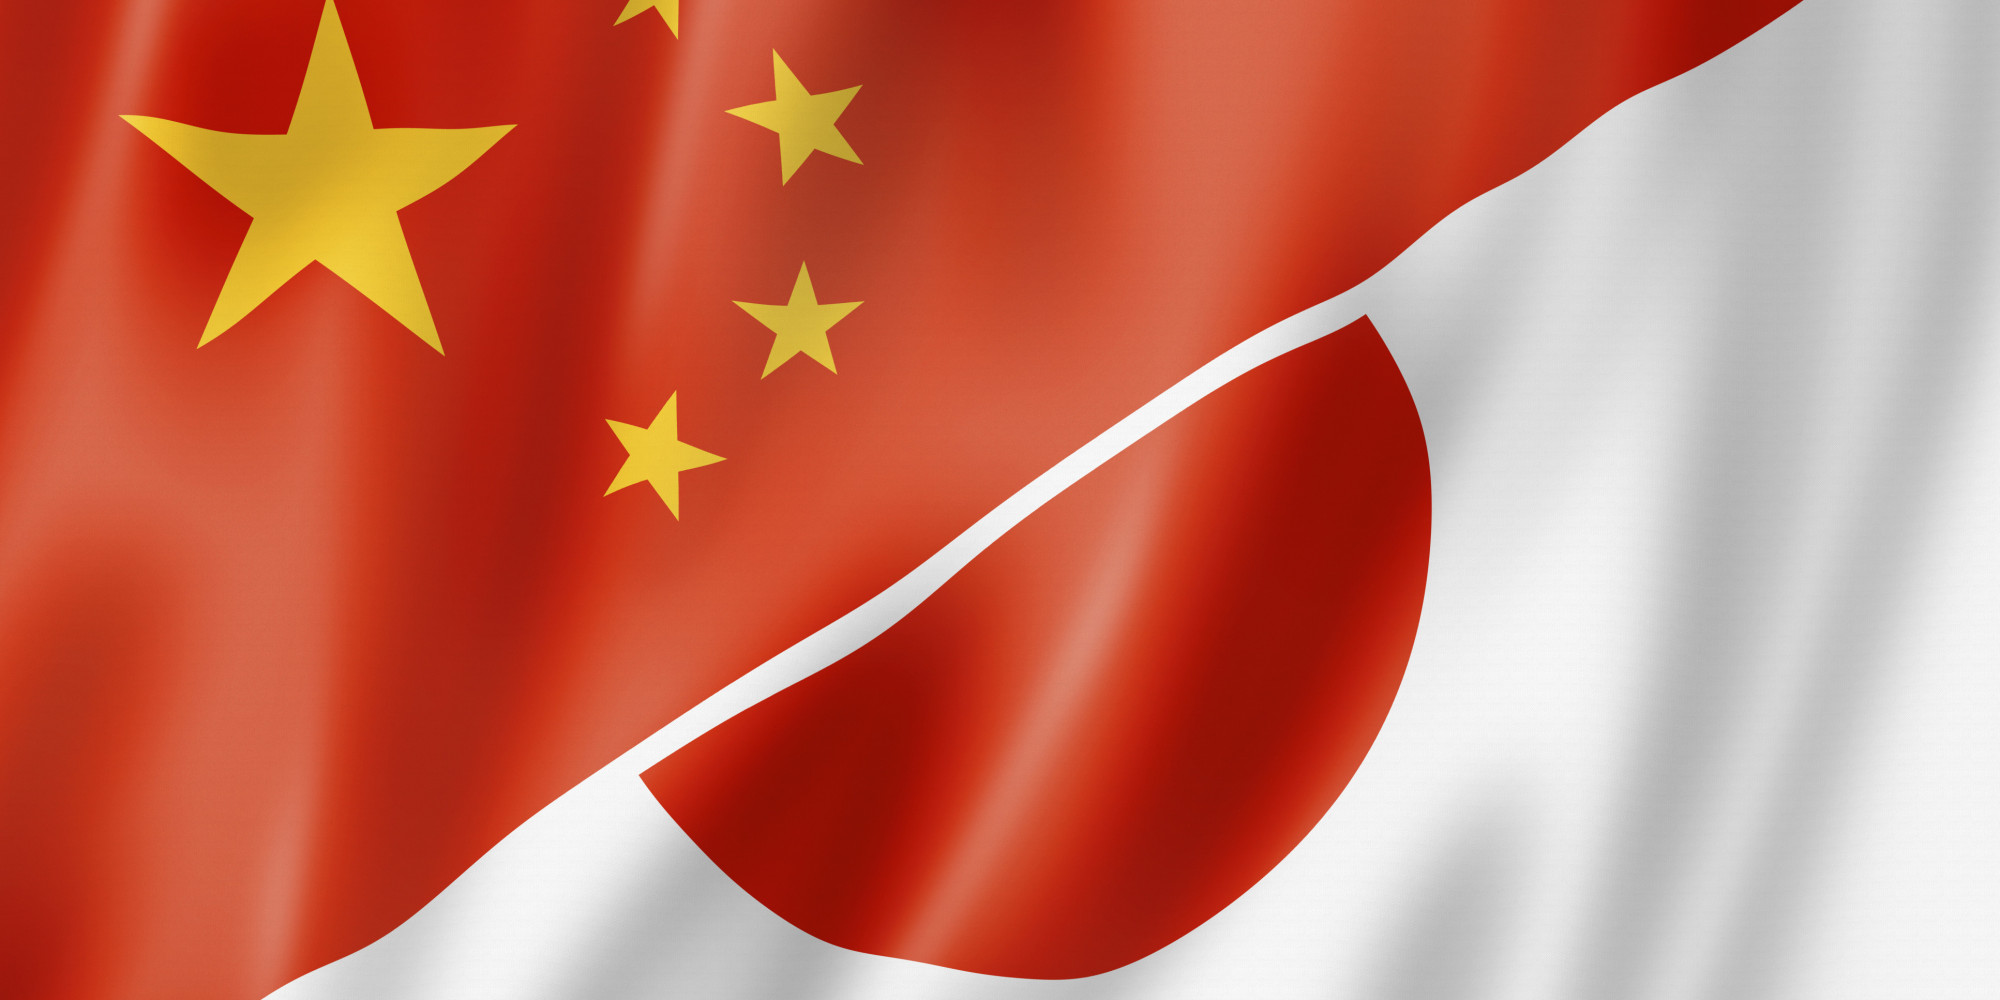 FxPro: China is at risk of following in Japan's footsteps